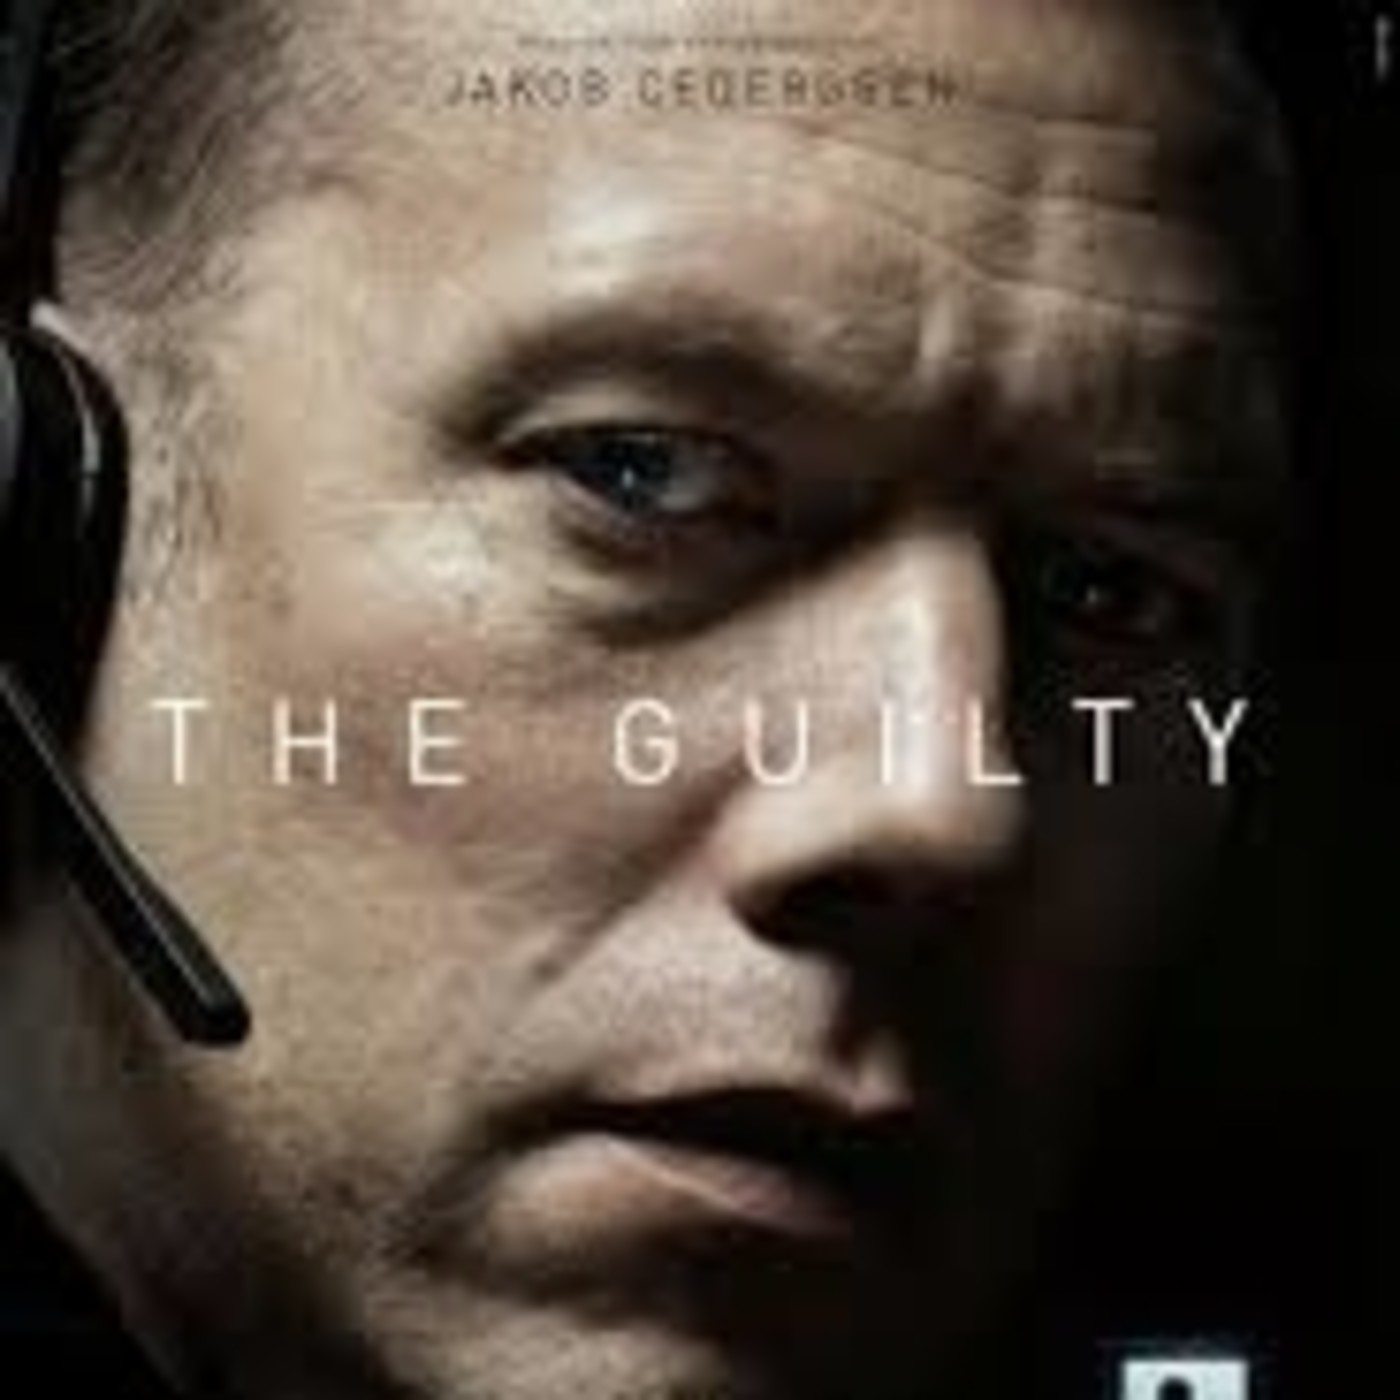 The guilty-Una de las grandes películas de intriga de 2018